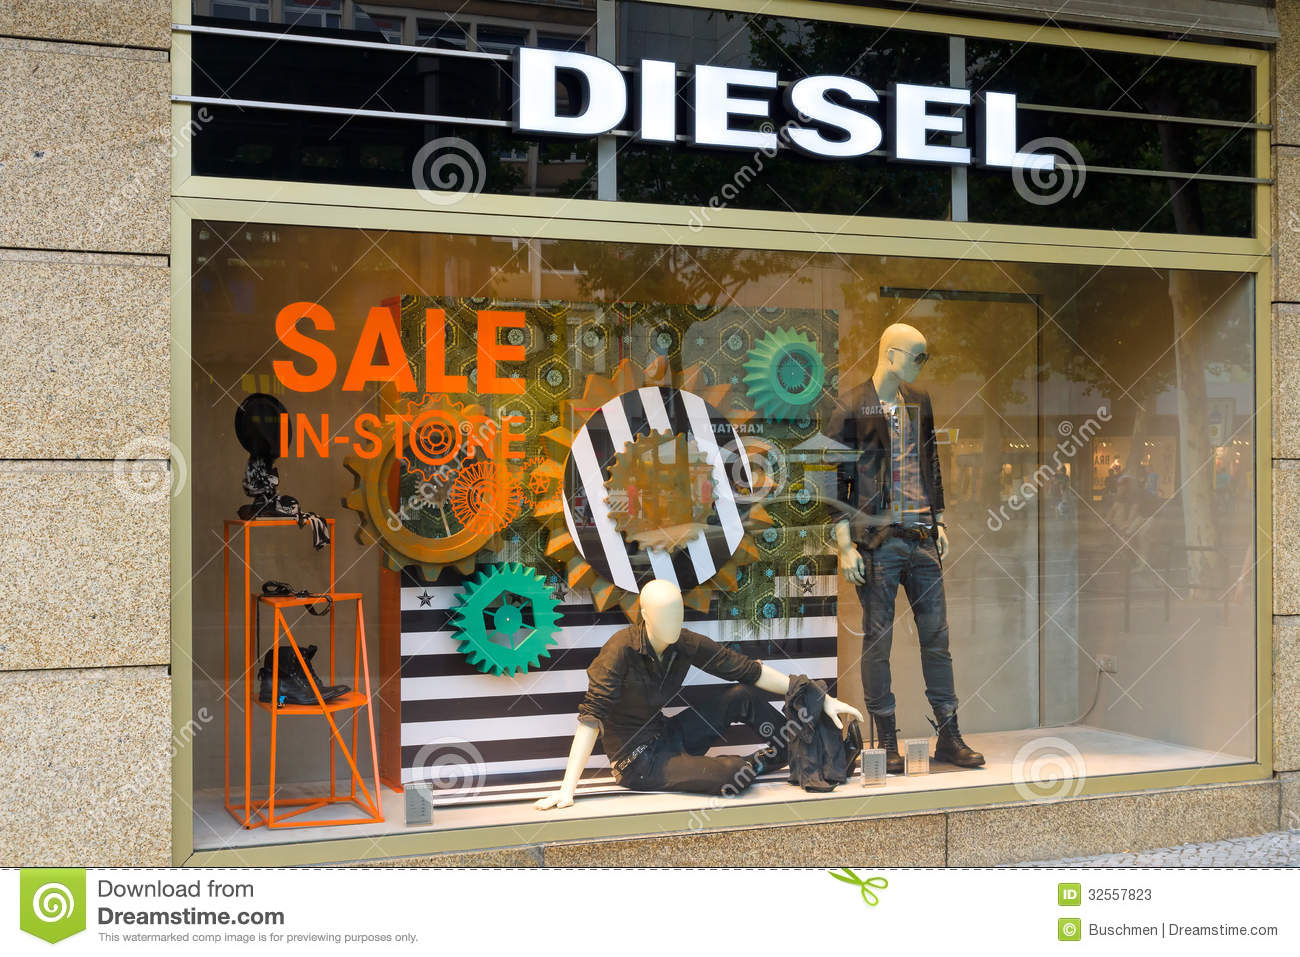 Diesel clothing store locator